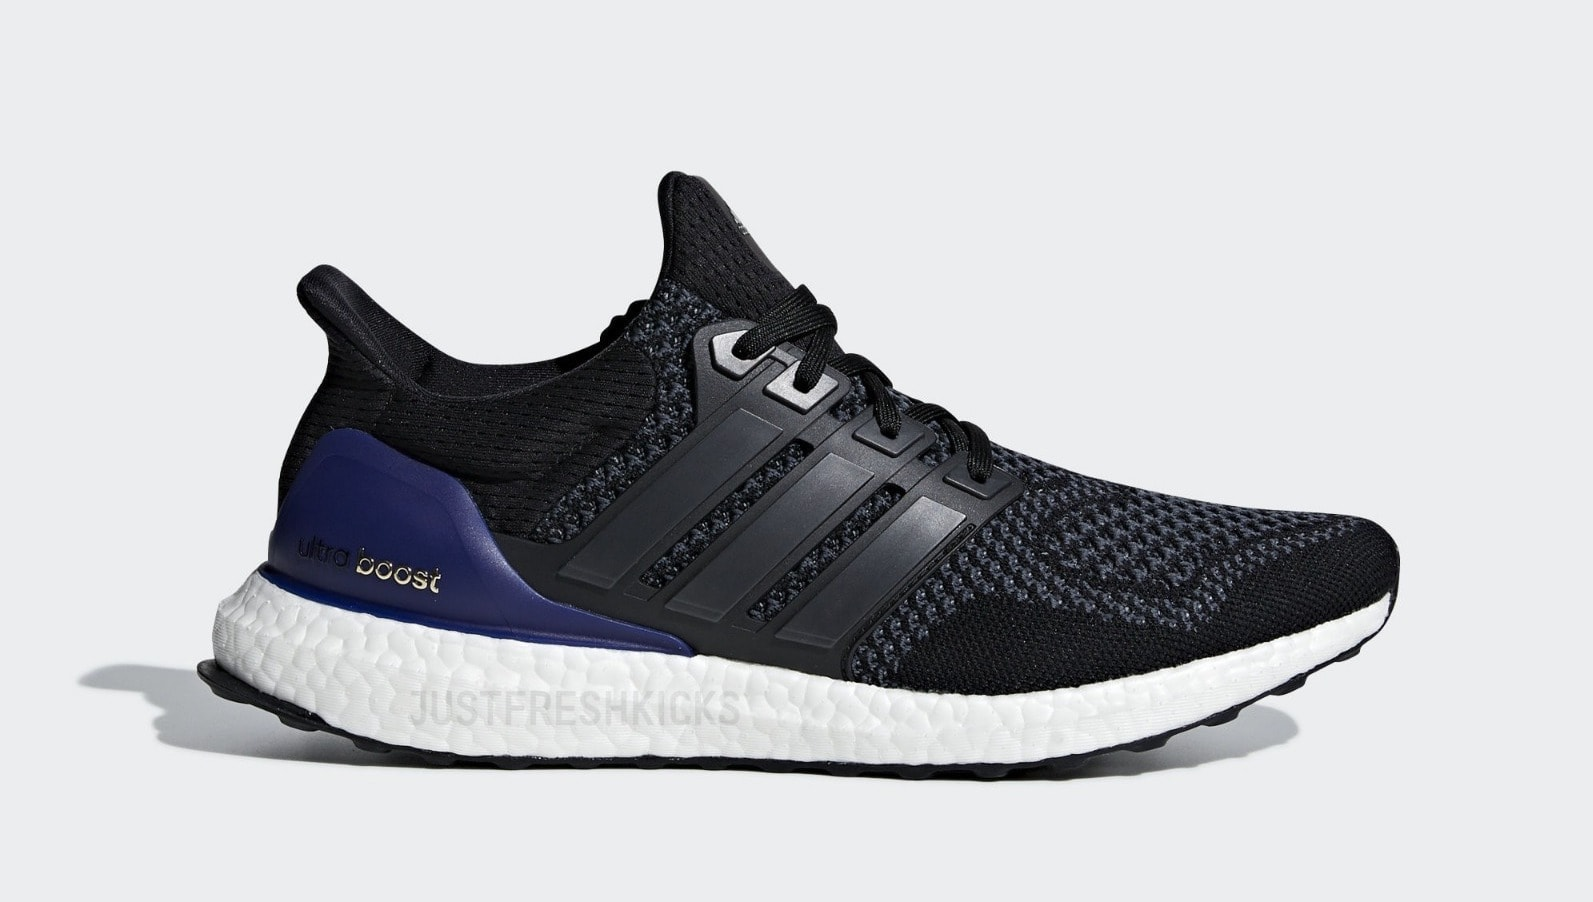 d018dd6a31616 The adidas Ultra Boost Returns in its Original 1.0 Primeknit Pattern This  Winter